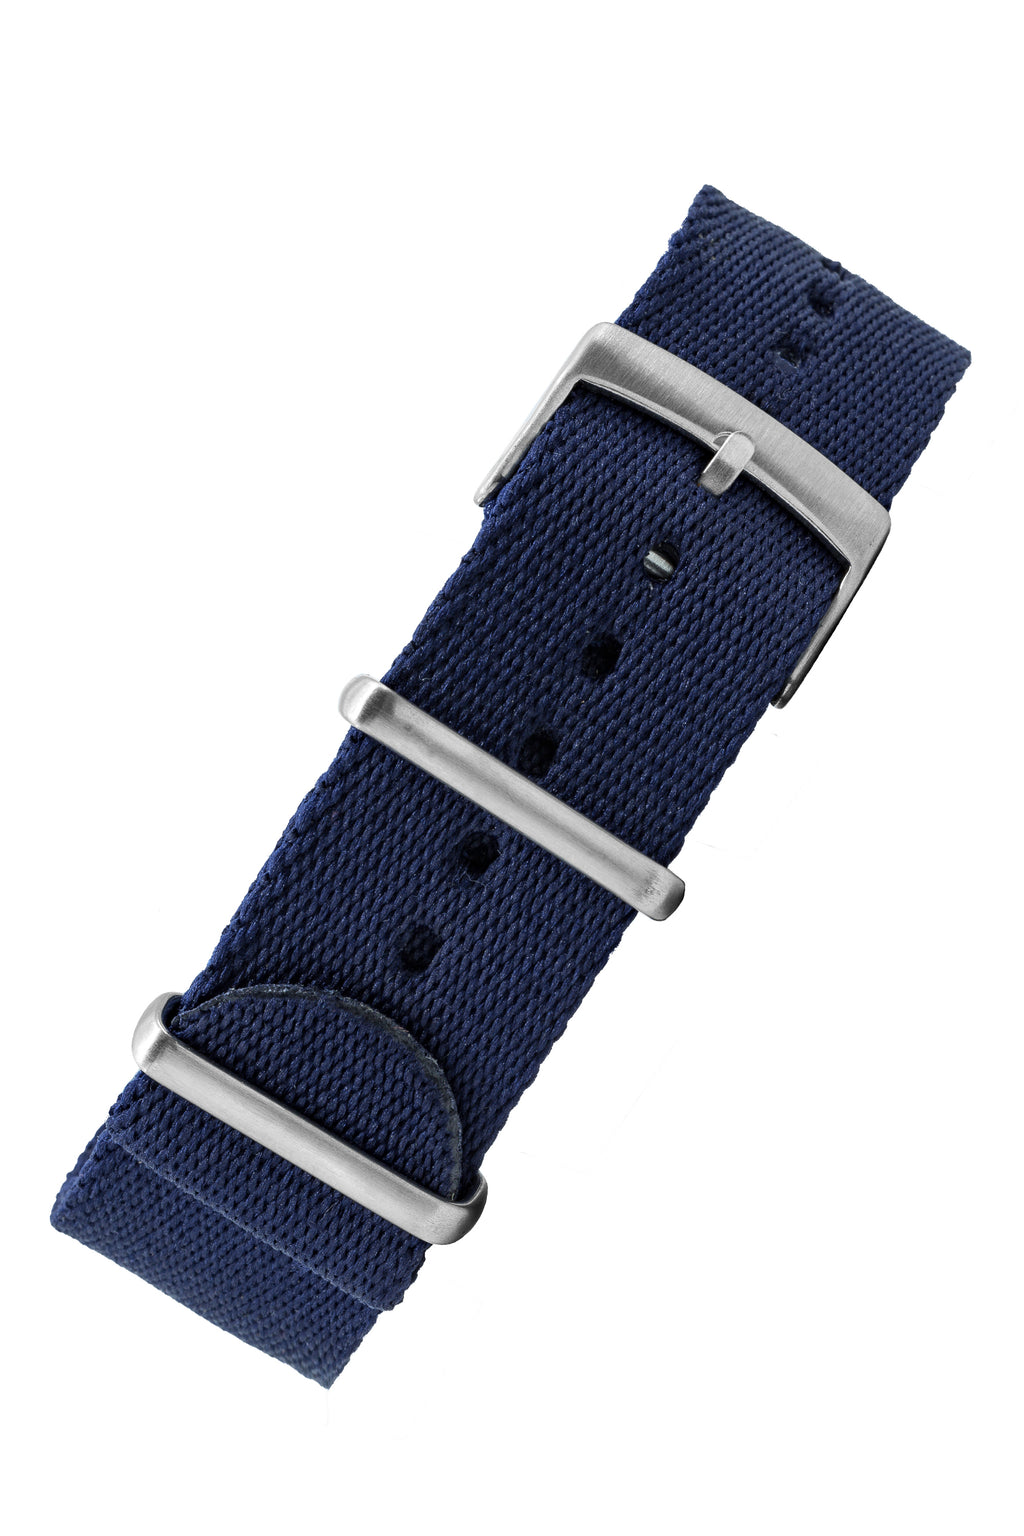 Premium NATO Watch Strap in Navy Blue with Brushed Hardware